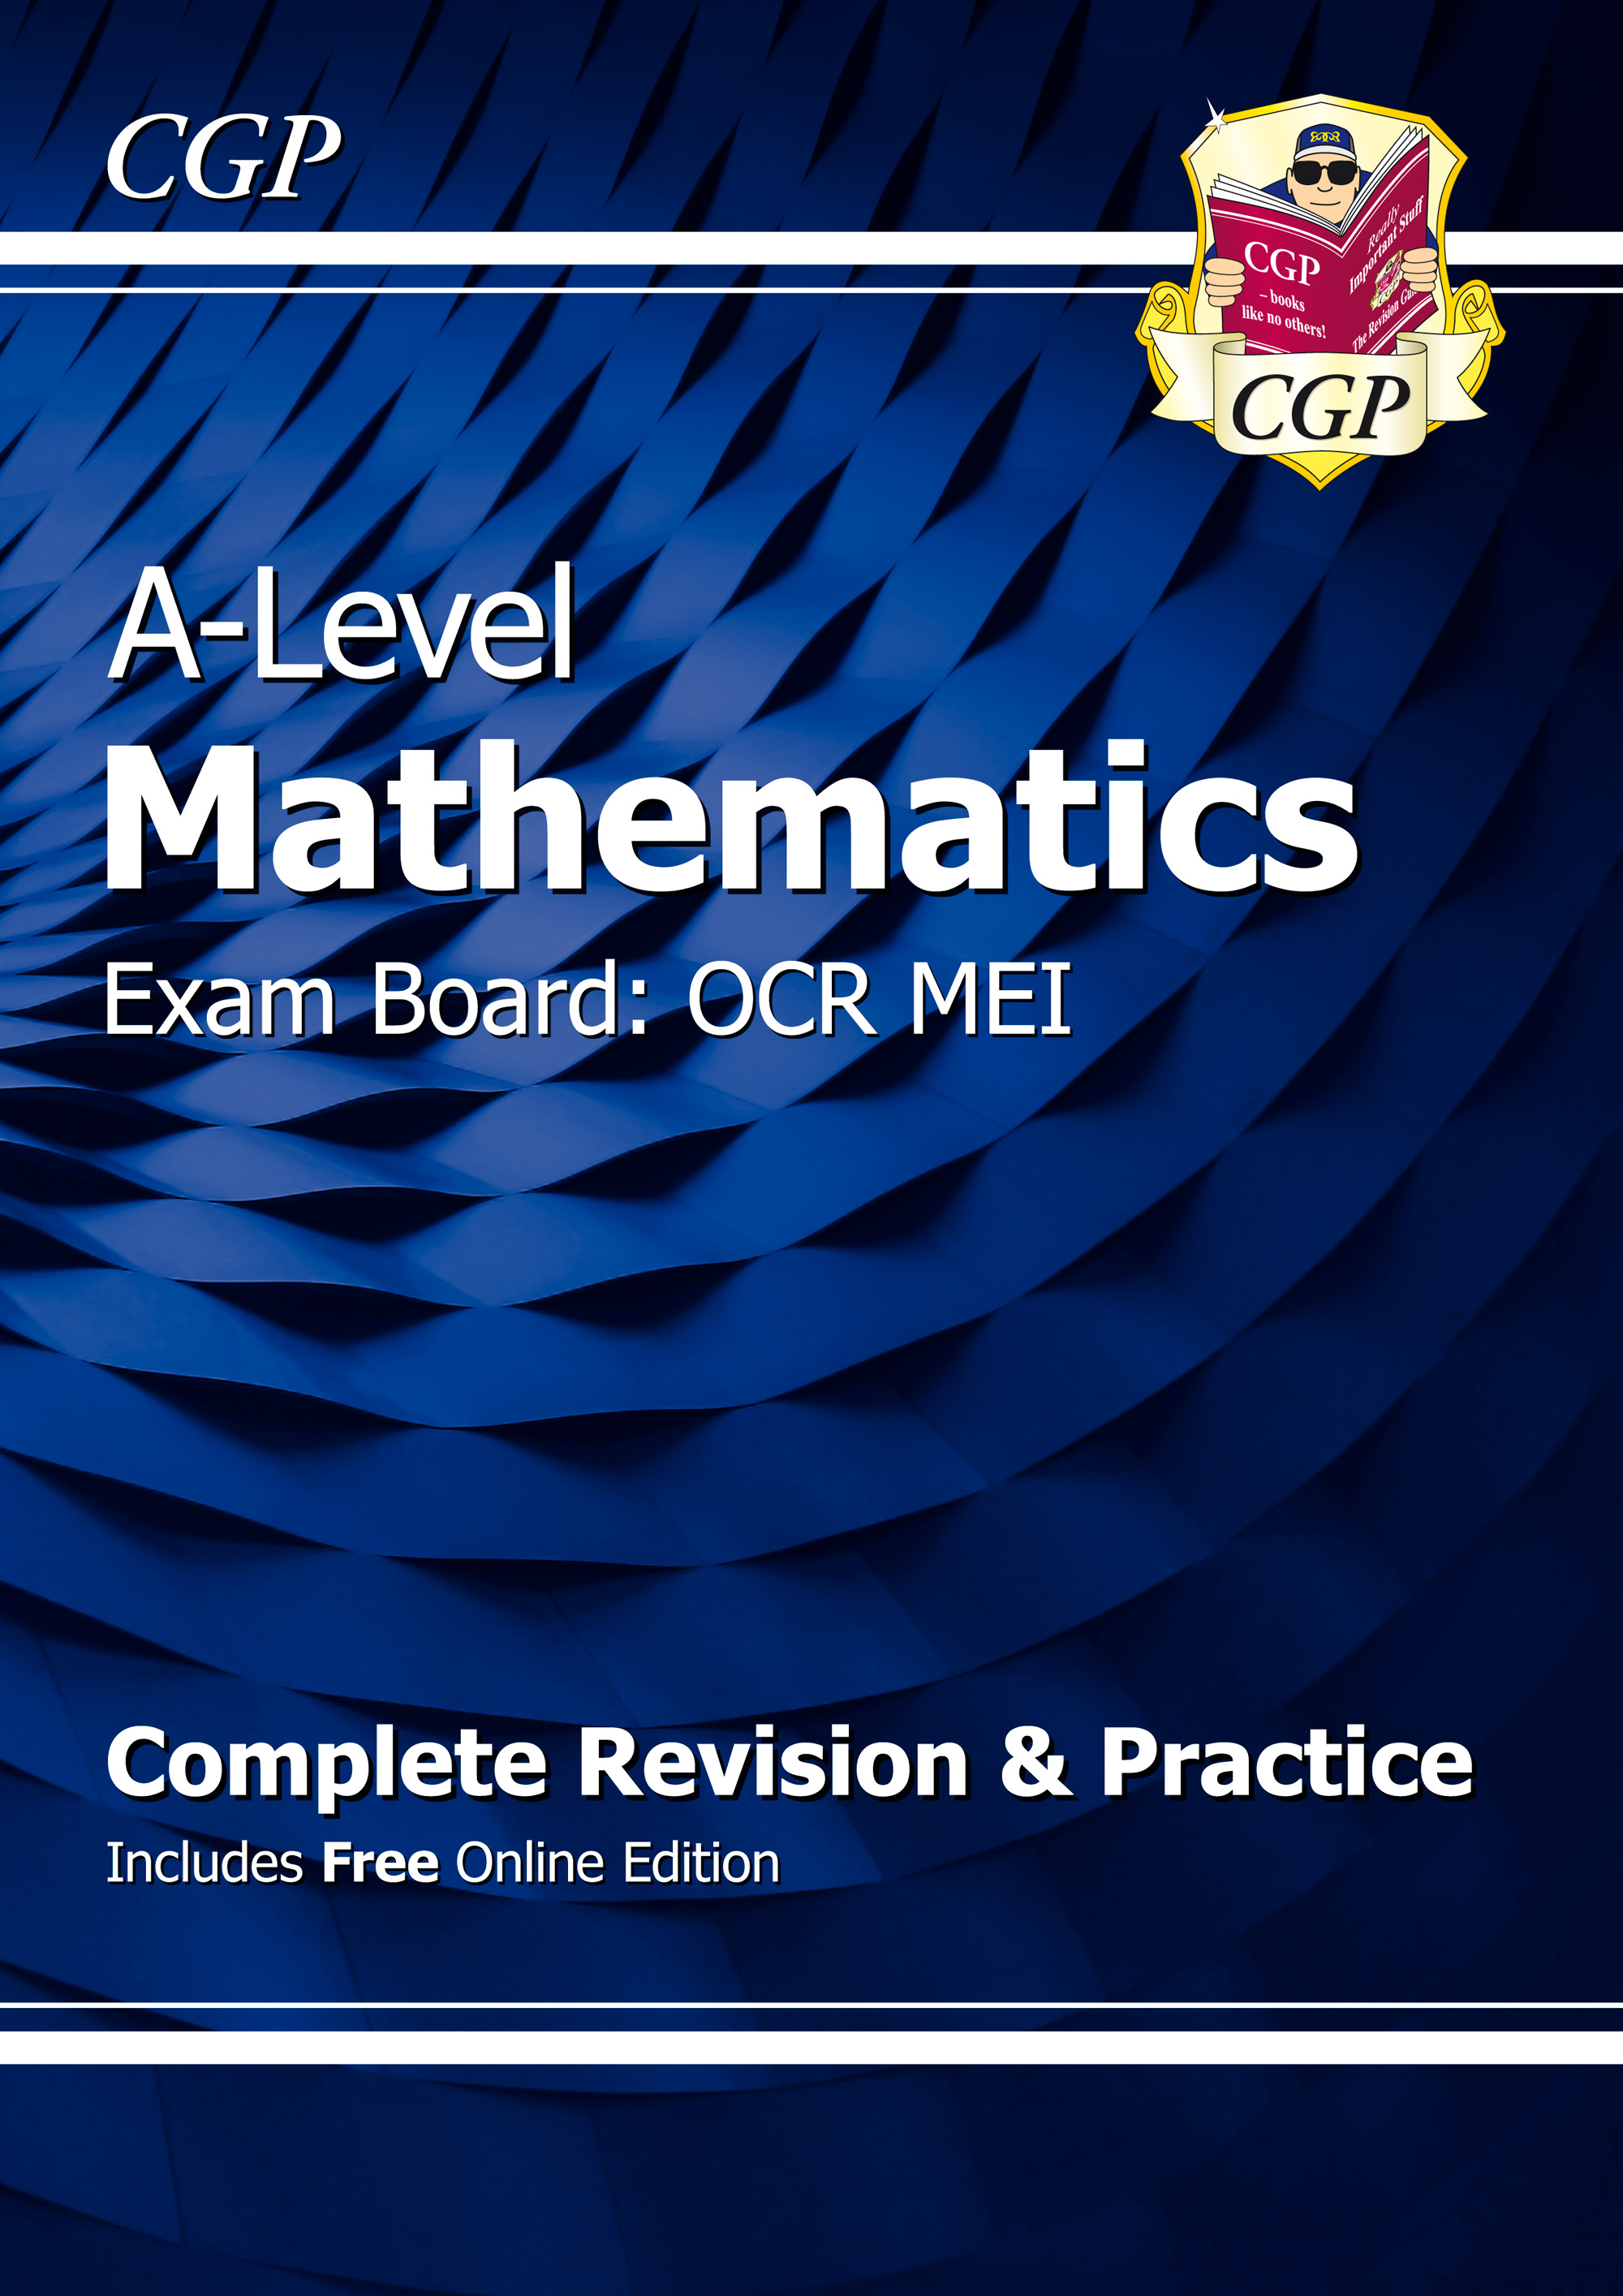 MRMR71 - A-Level Maths for OCR MEI: Year 1 & 2 Complete Revision & Practice with Online Edition